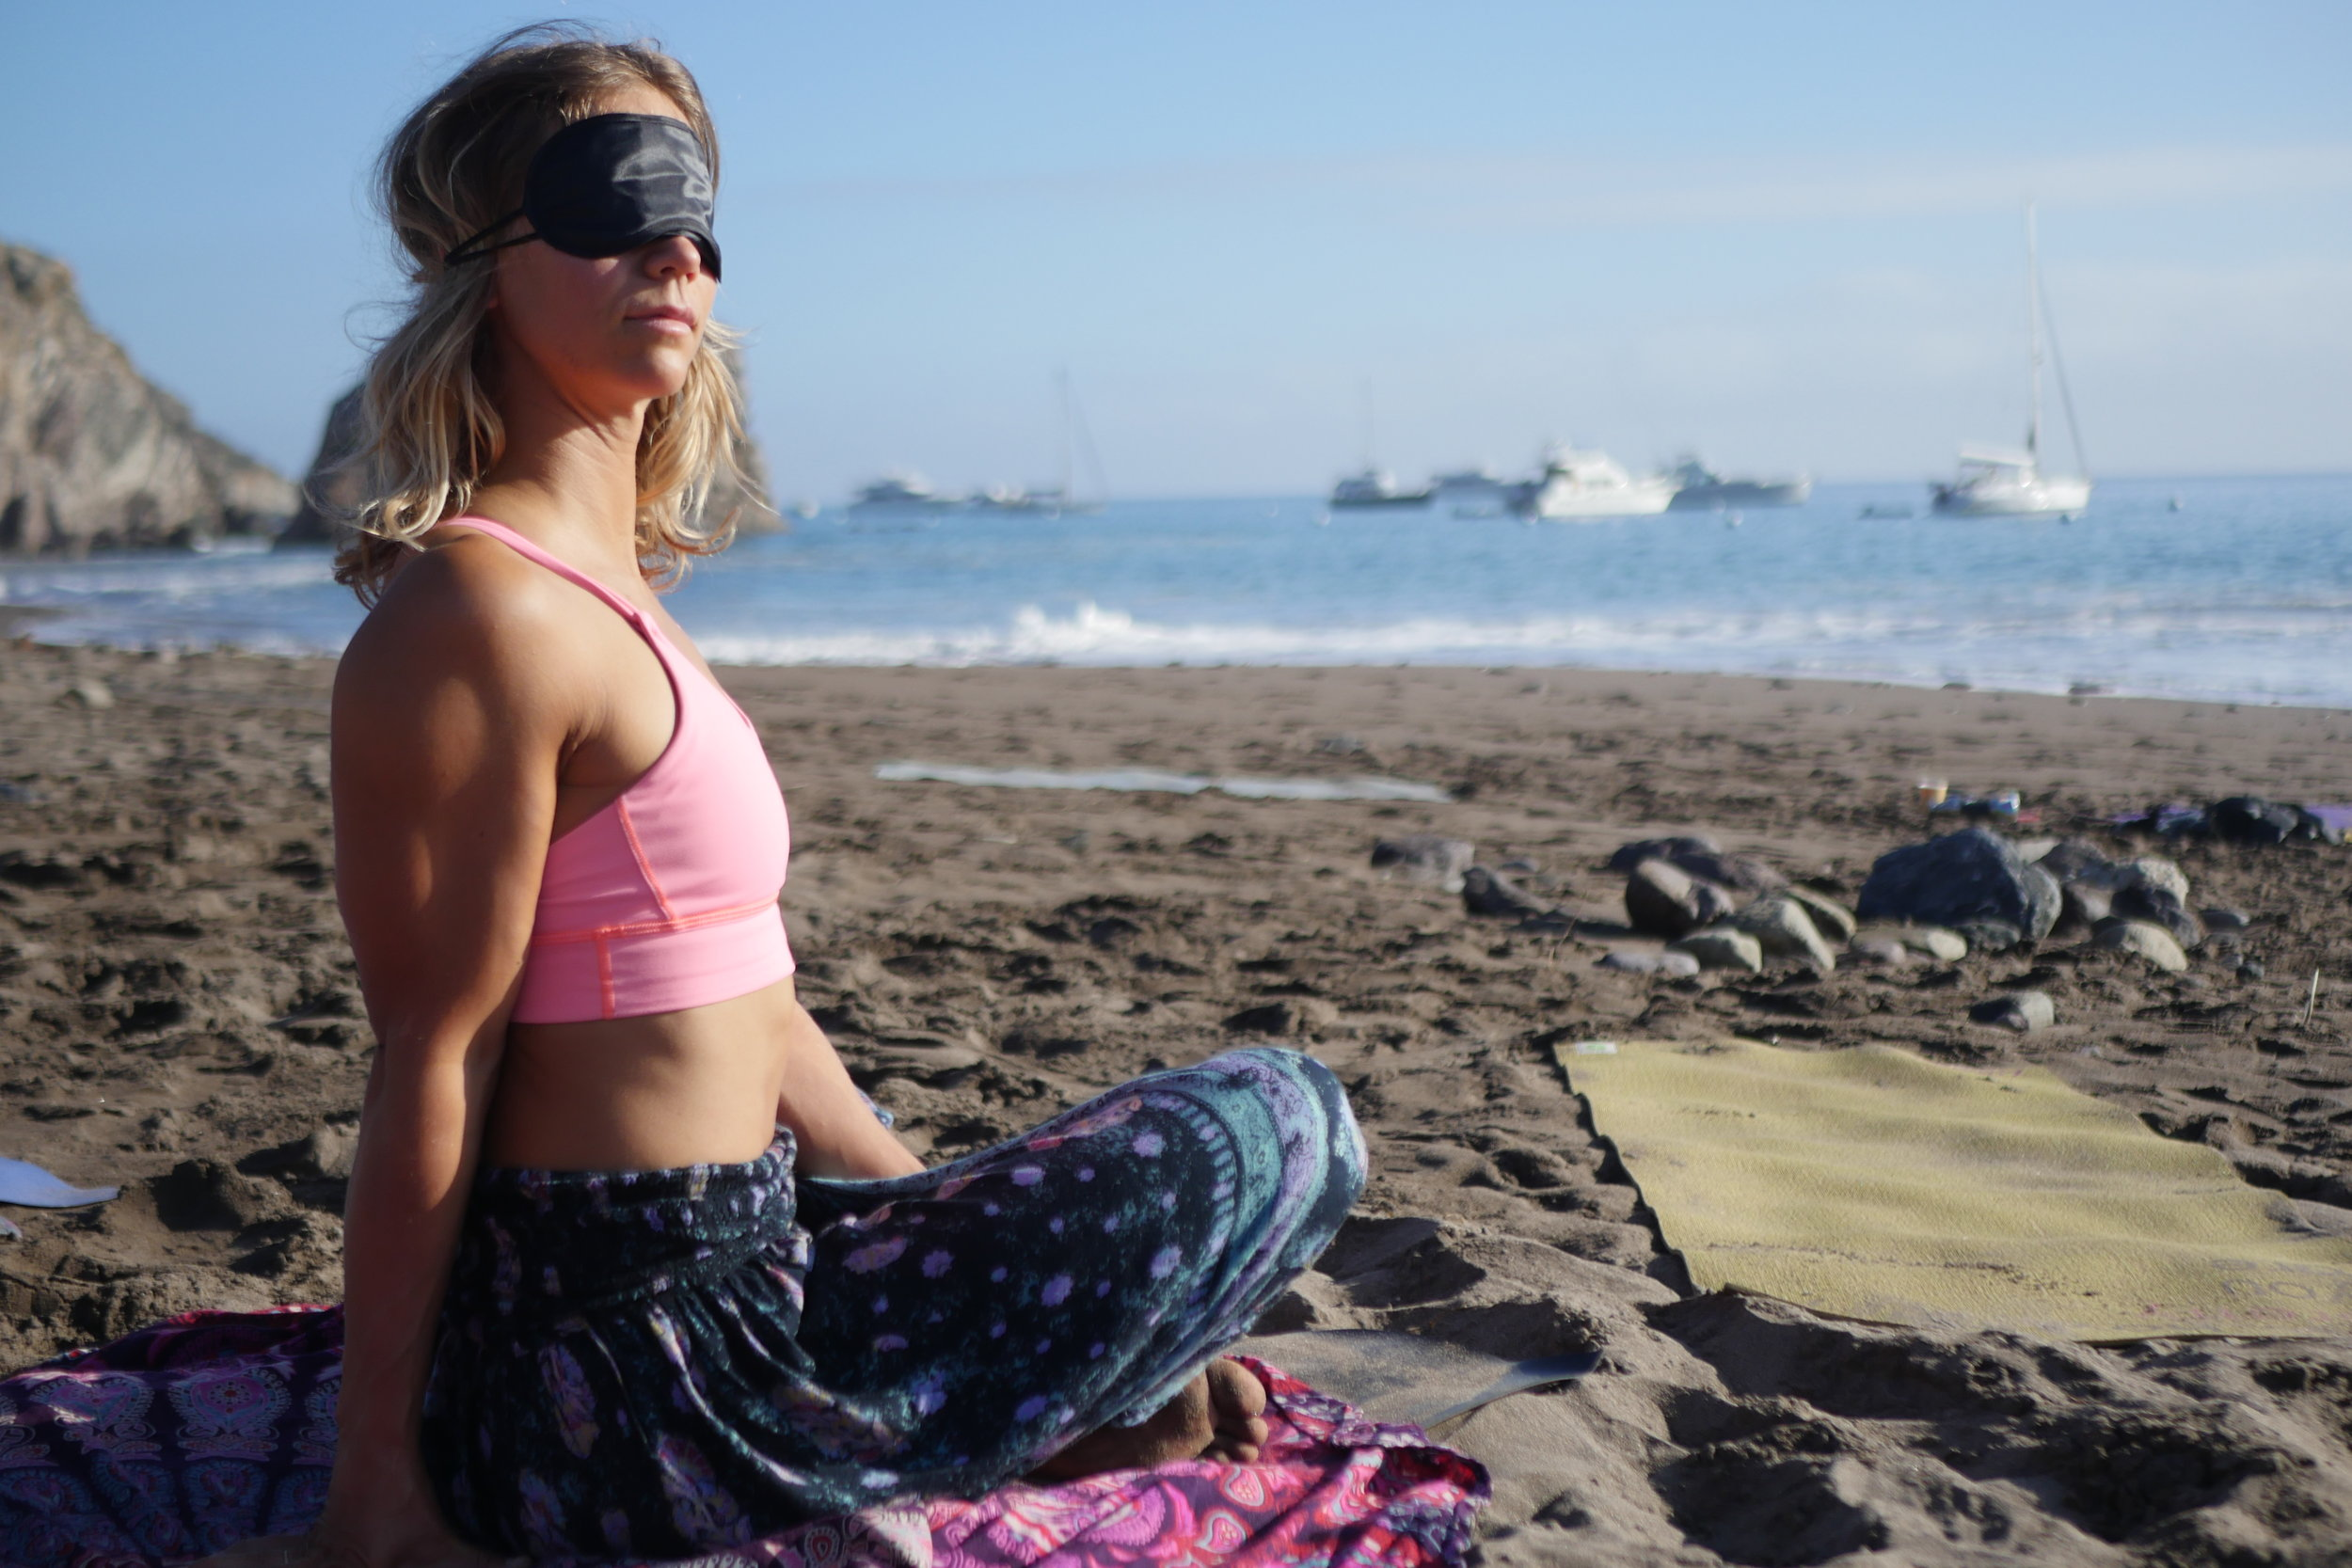 Getting our morning BLINDFOLDED yoga time in on the beach. Not being able to see provides gratitude for what we have and challenges our senses and balance so much.